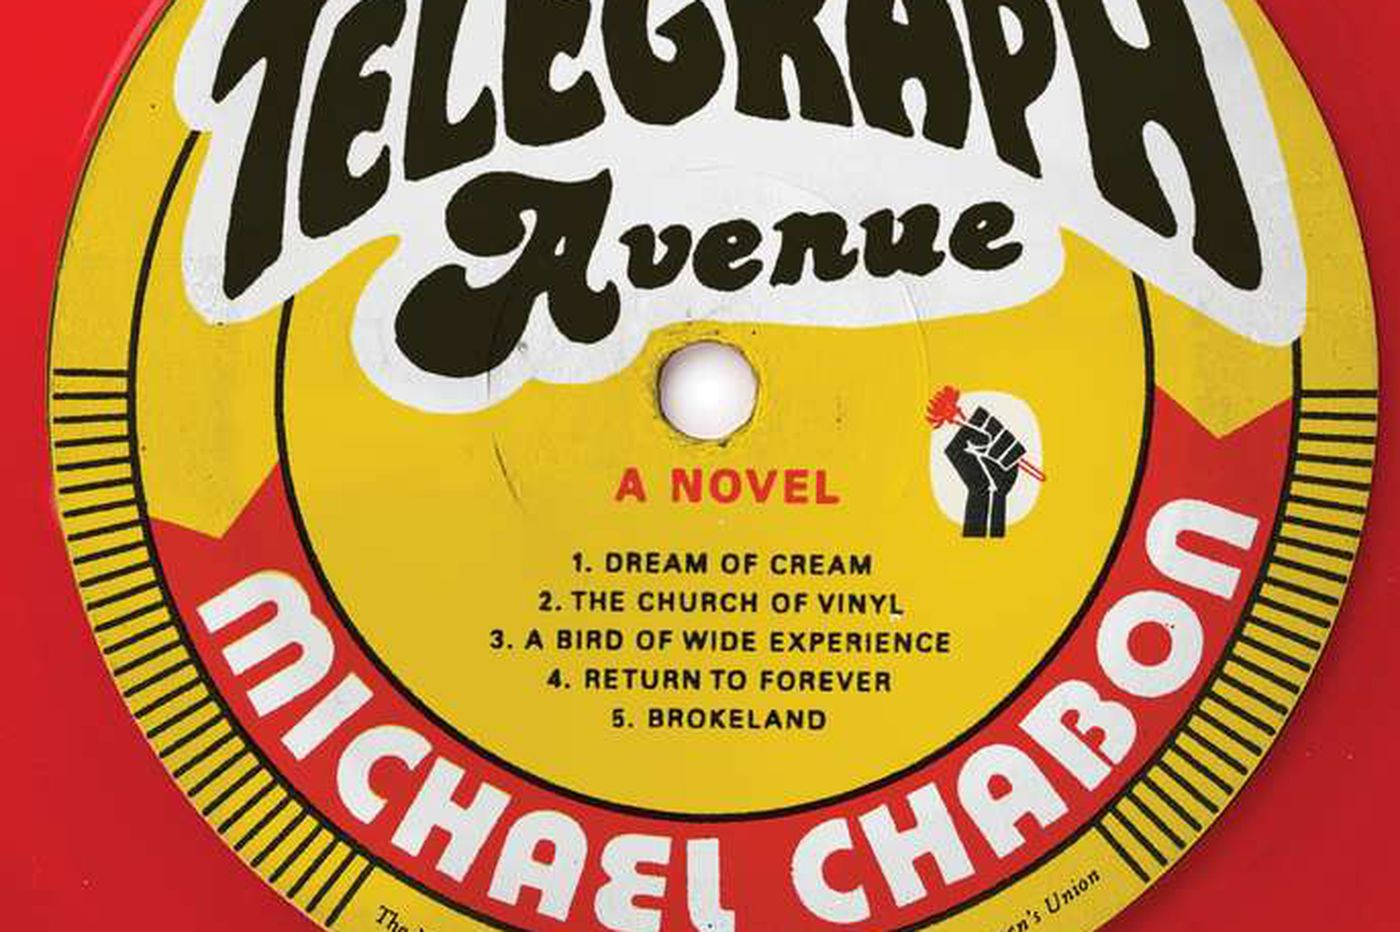 A collection of pop culture masquerading as a novel